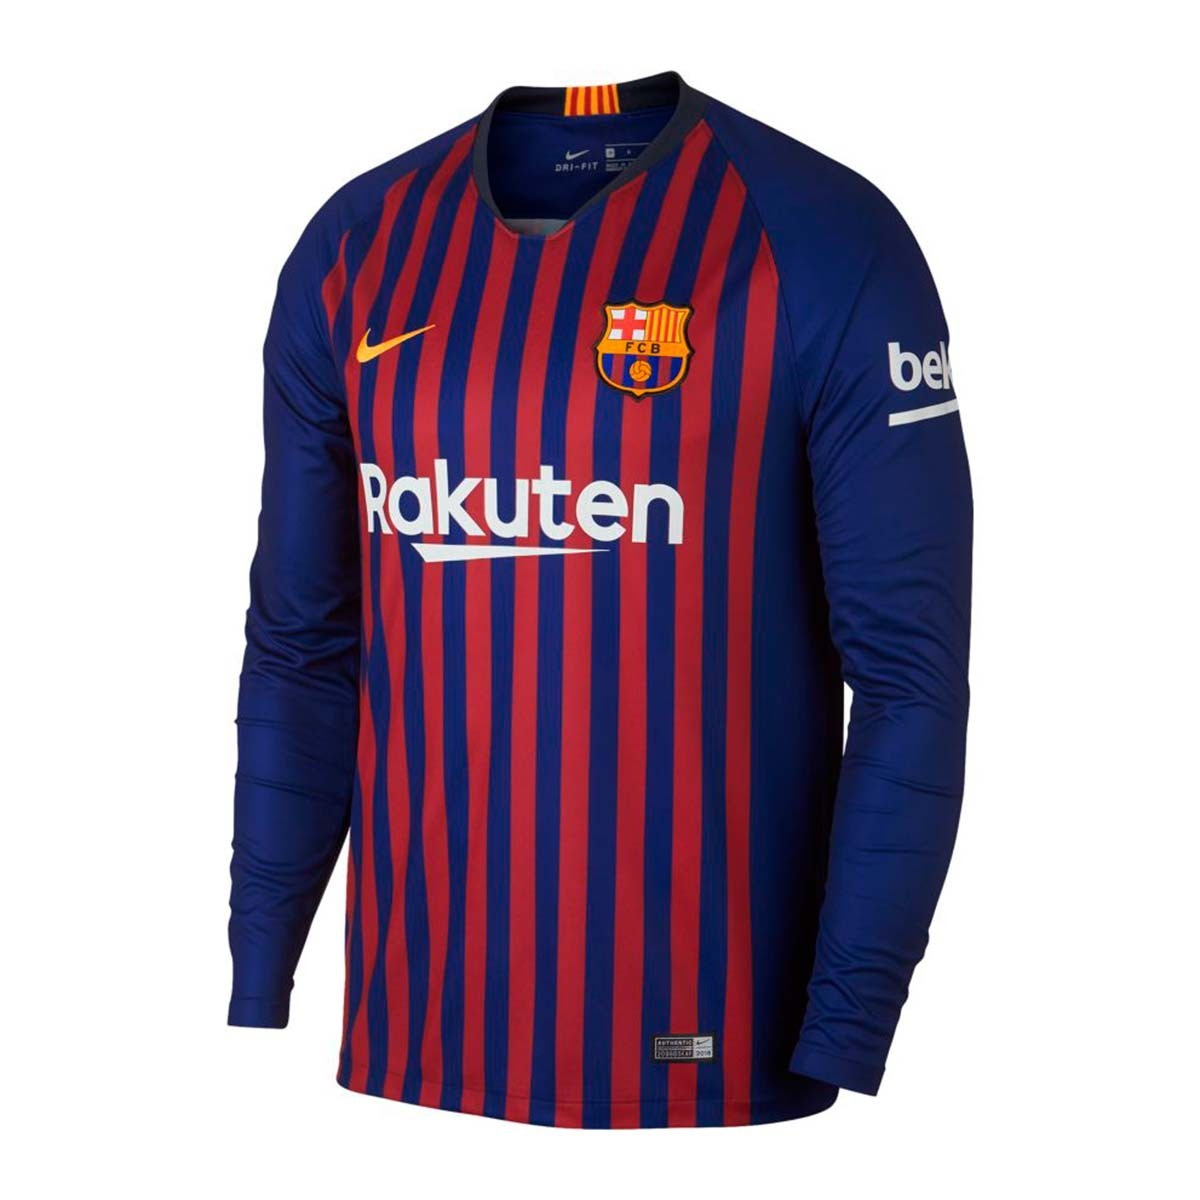 01dc0c7cb Jersey Nike FC Barcelona Stadium L S 2018-2019 Home Deep royal  blue-University gold - Football store Fútbol Emotion